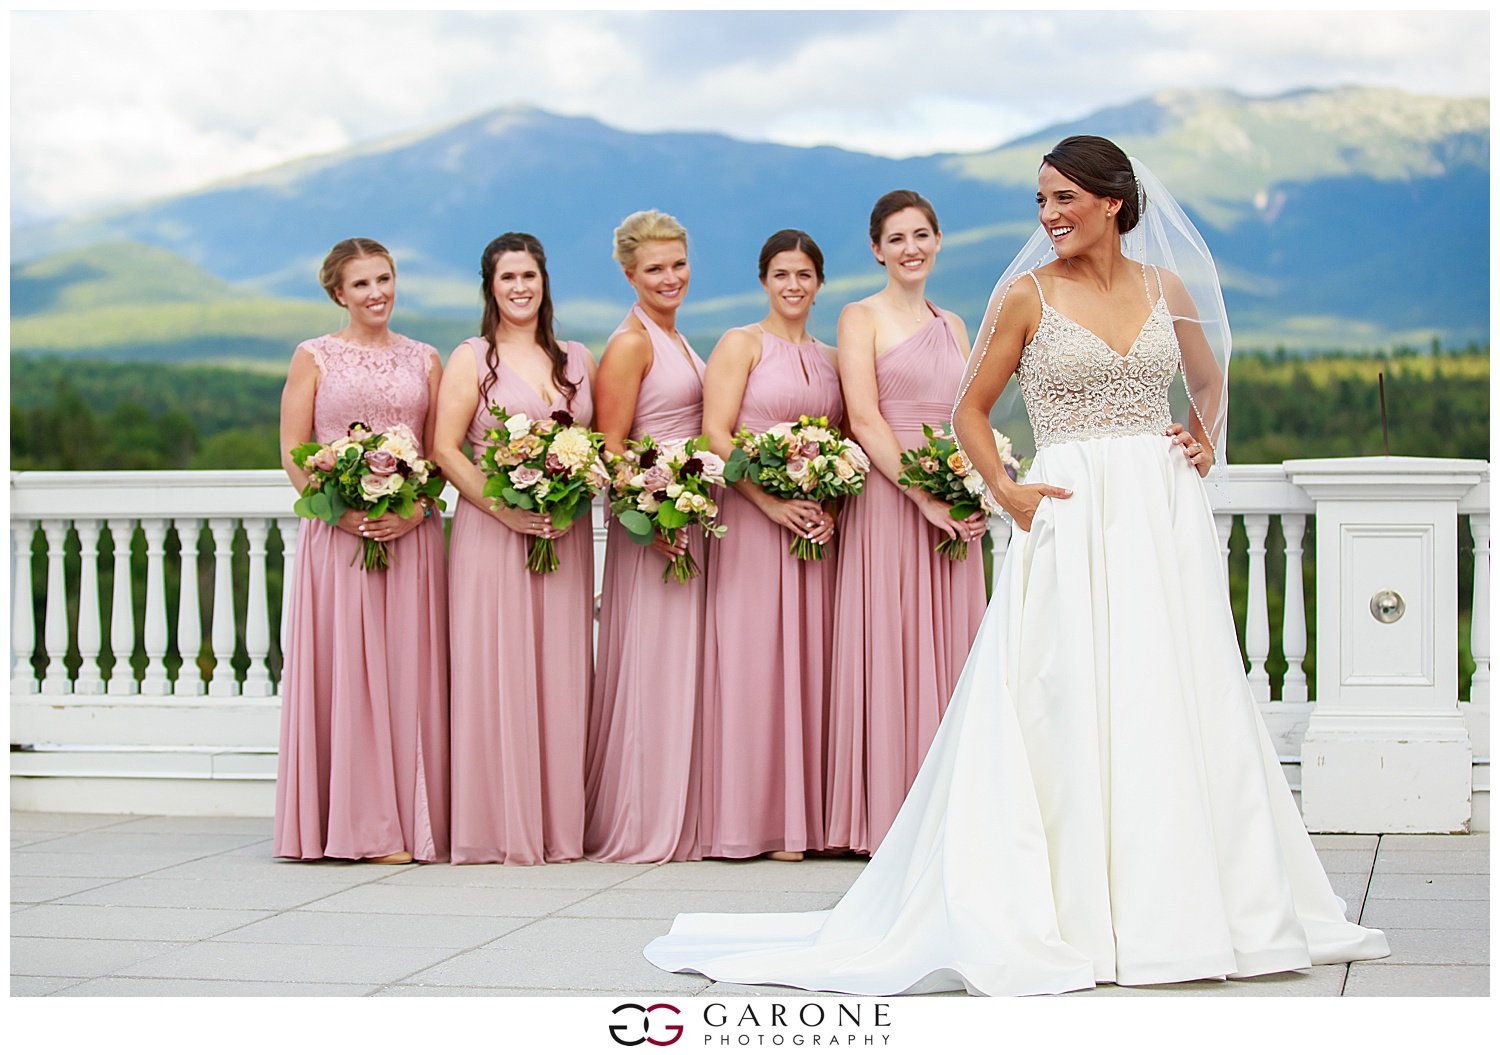 Omni_Mount_Washington_hotel_Wedding_White_Mountain_Wedding_Garone_Photography_0026.jpg